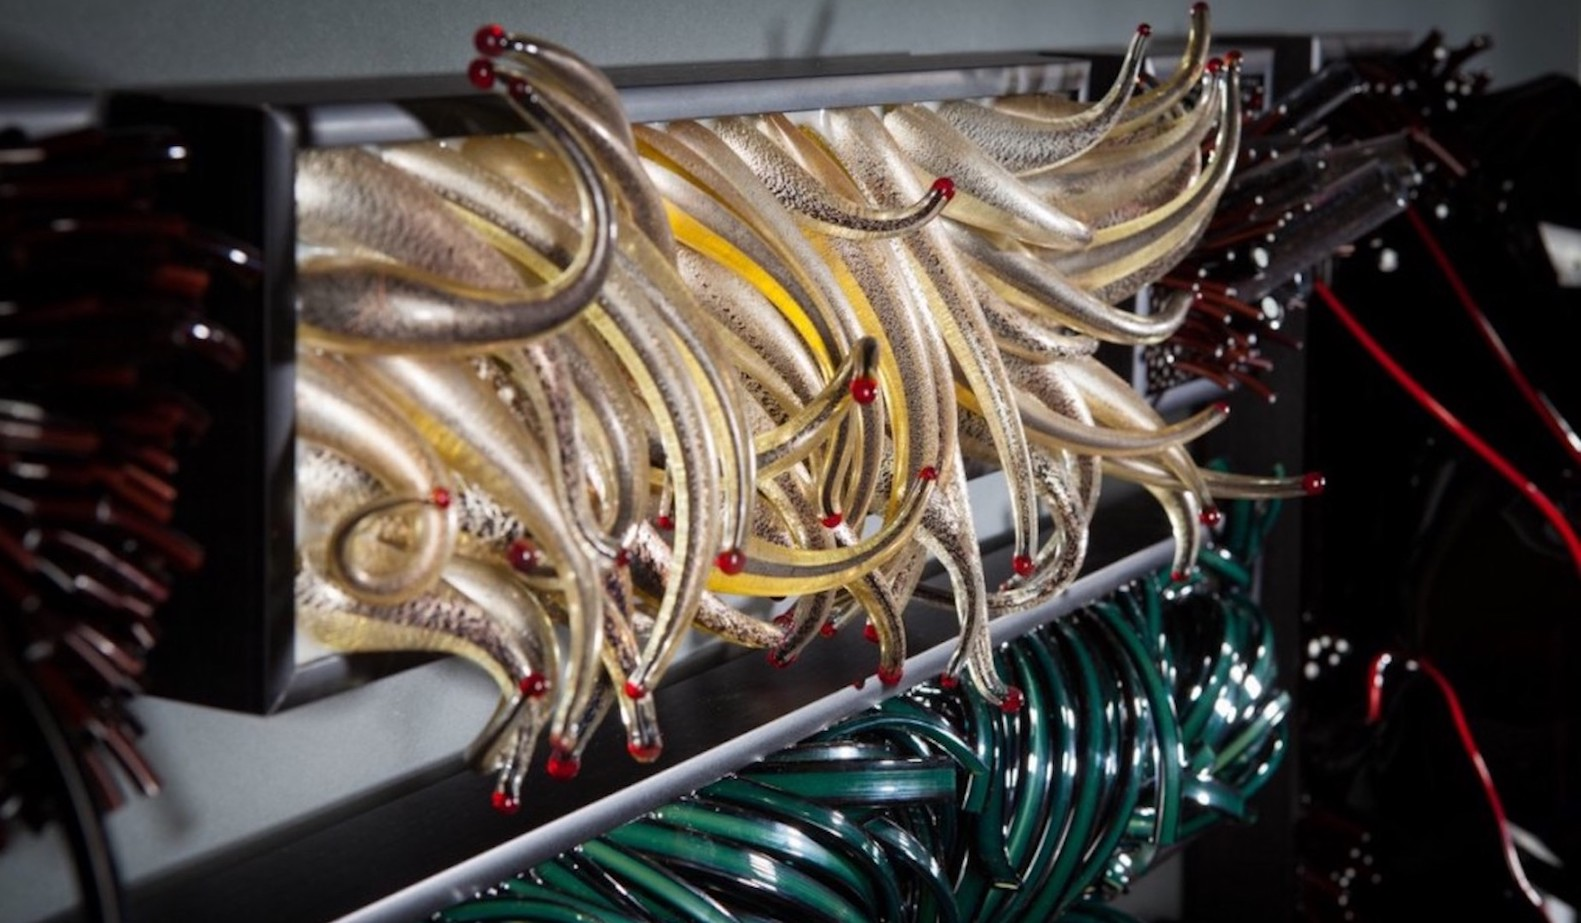 Glass sculpture by shayna leib at Habatat Galleries FL